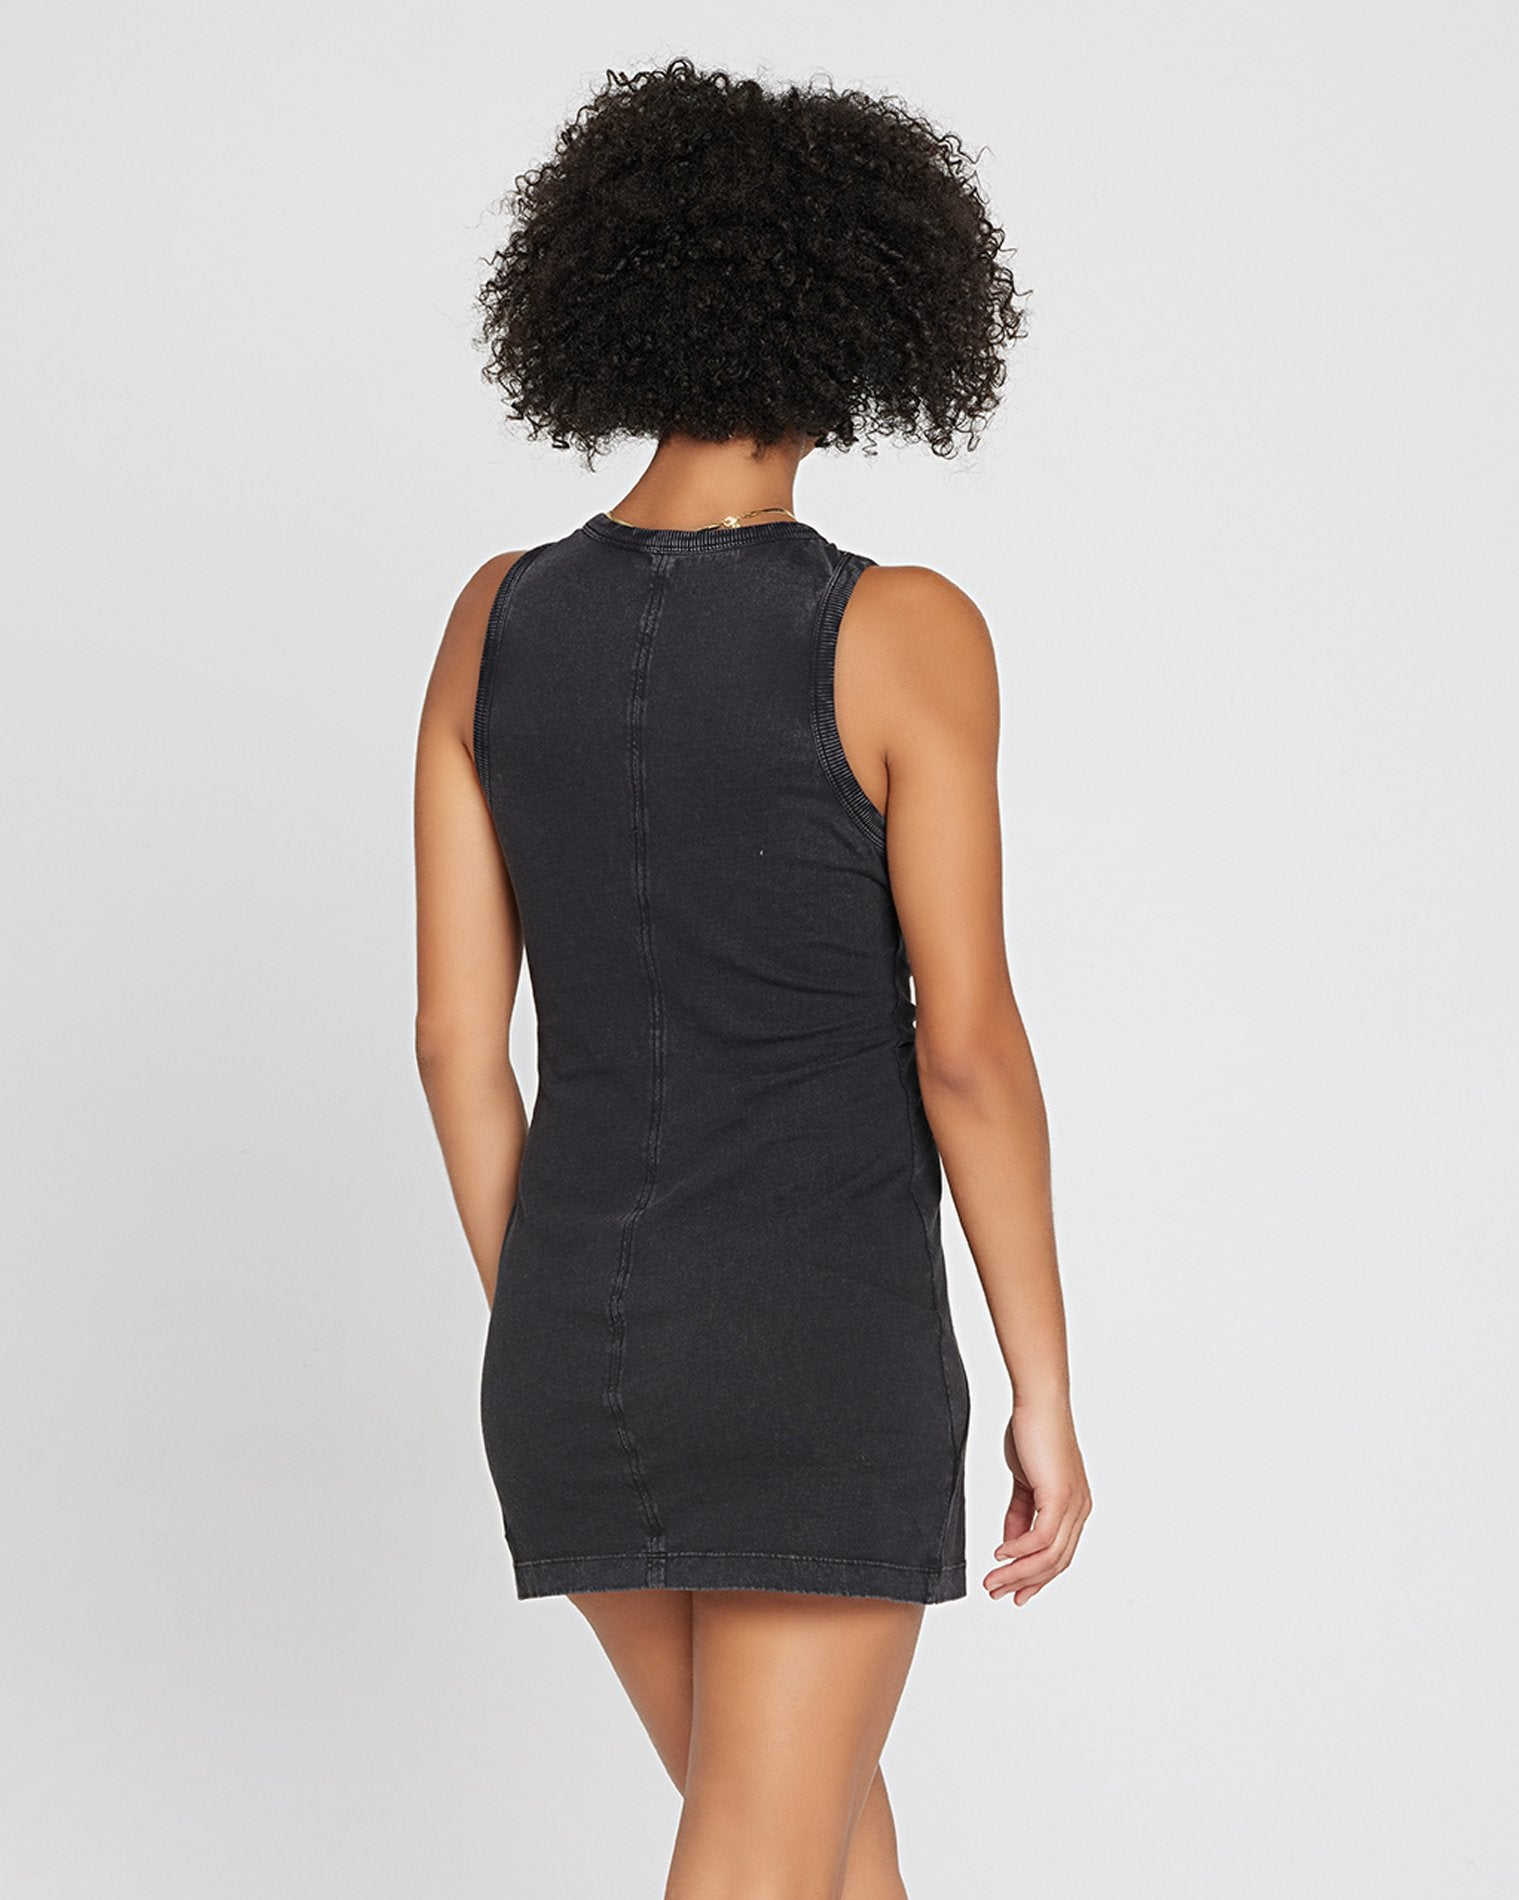 L*Space Seaview Dress in Black